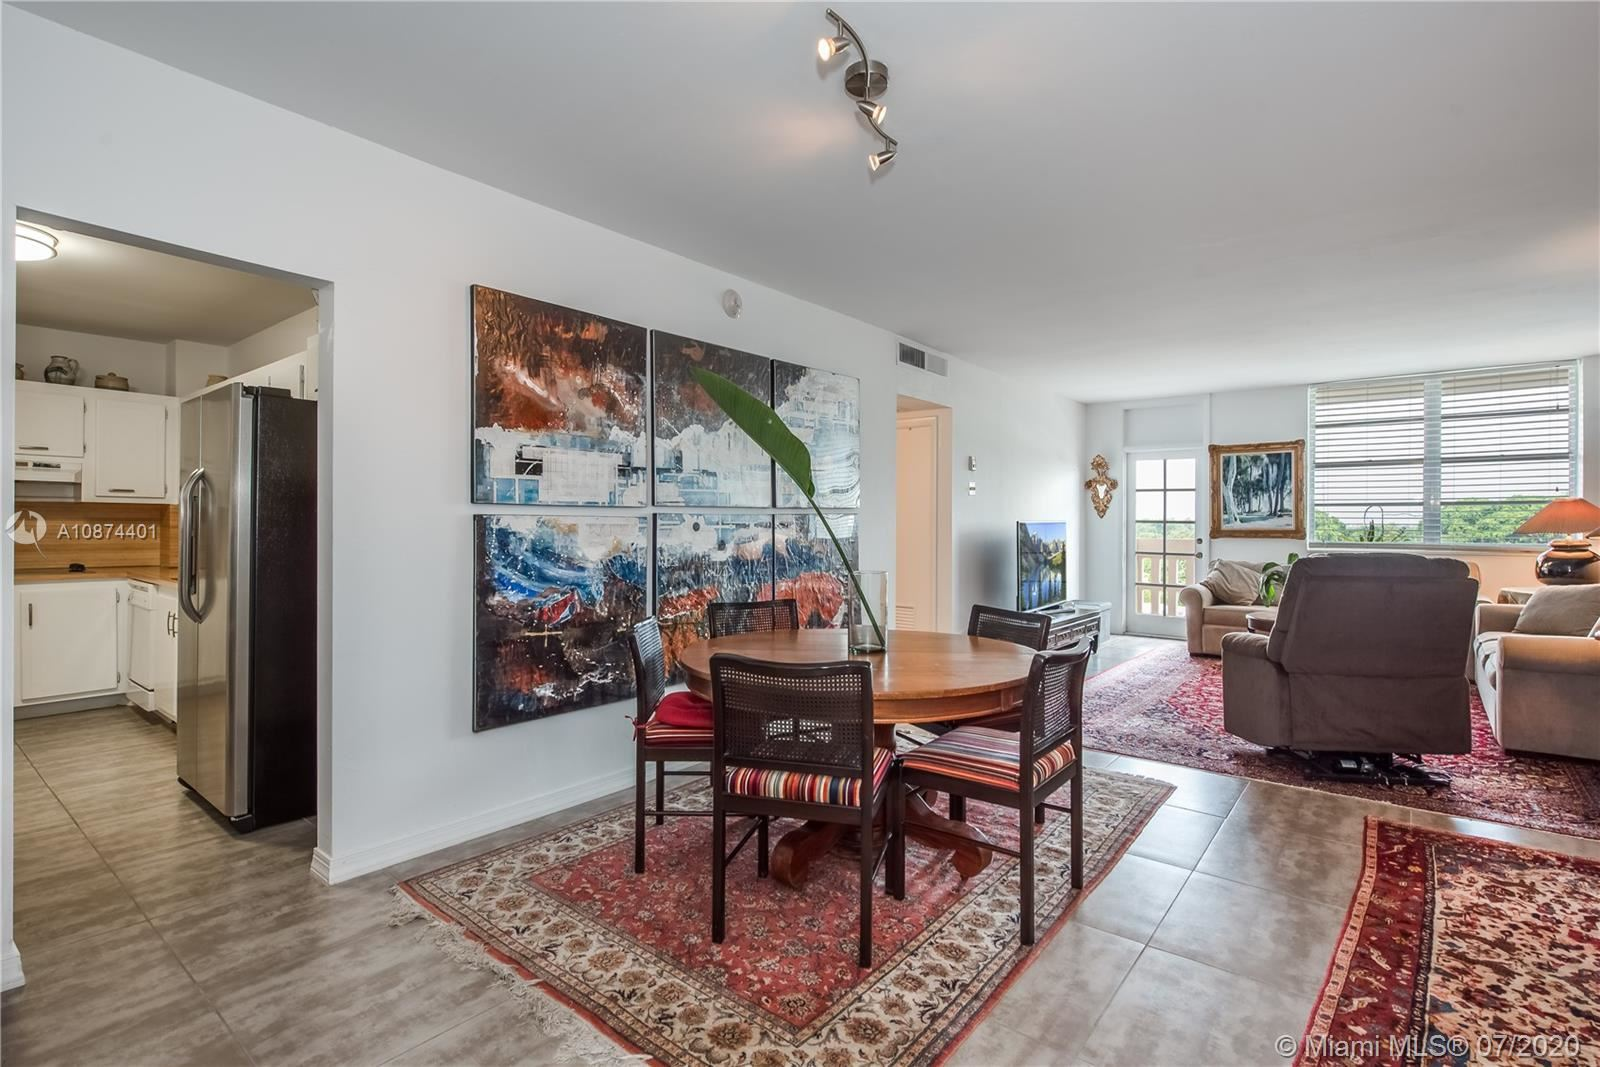 90 Edgewater Dr #811, Coral Gables, FL 33133 - #: A10874401